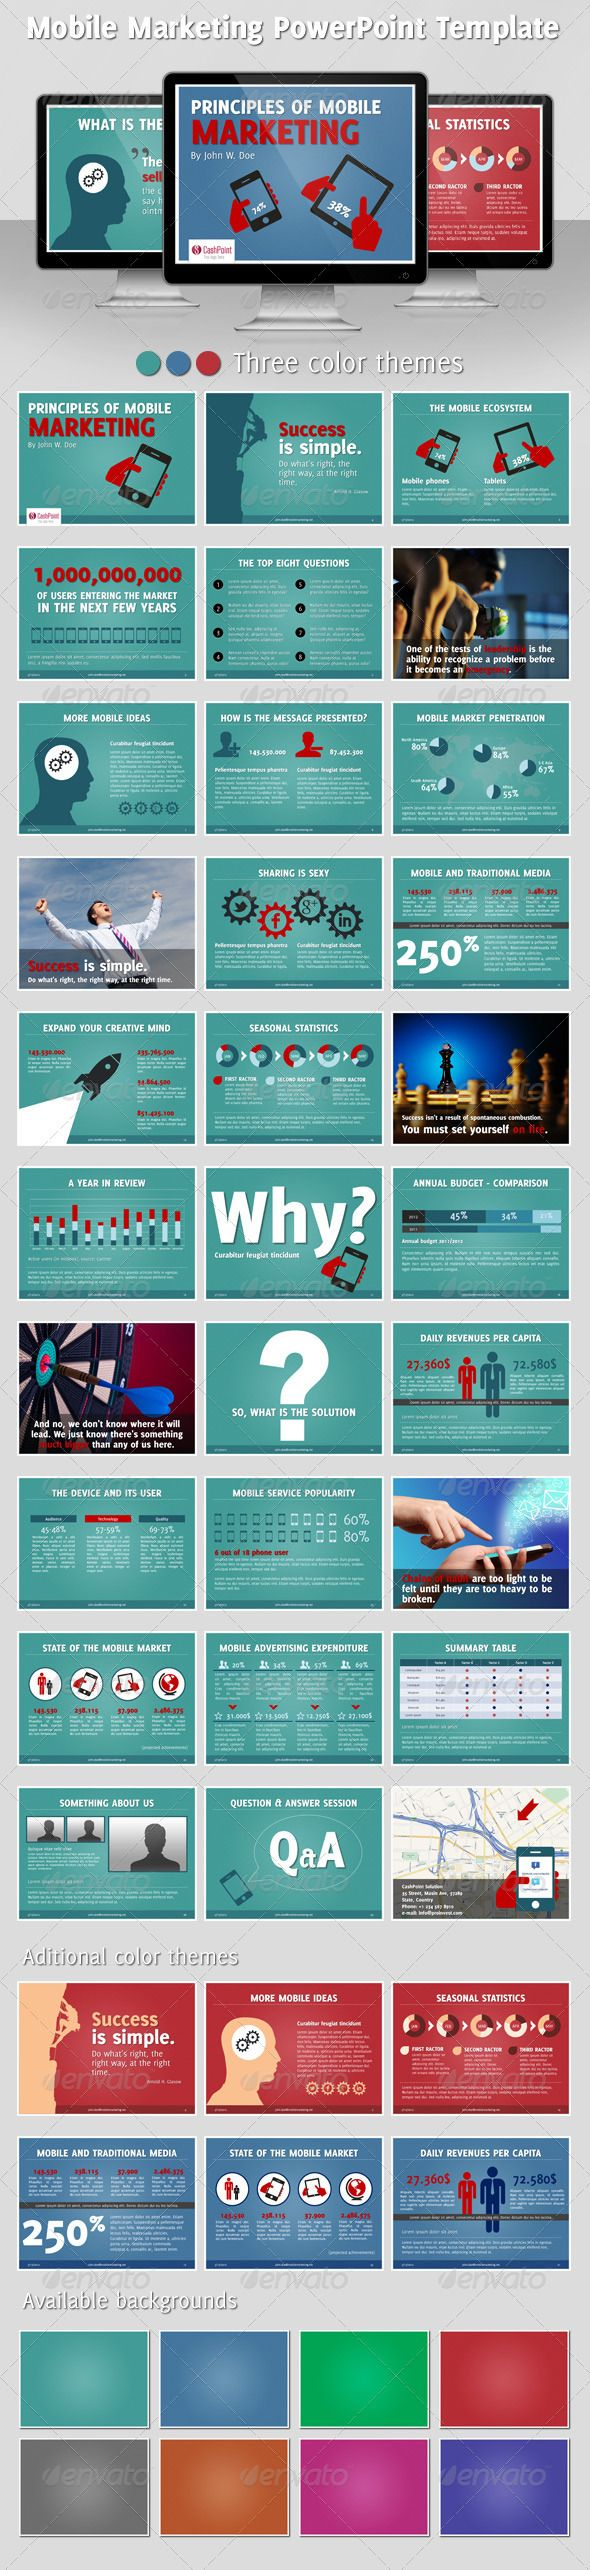 Presentation Templates - Mobile Marketing PowerPoint Template | GraphicRiver